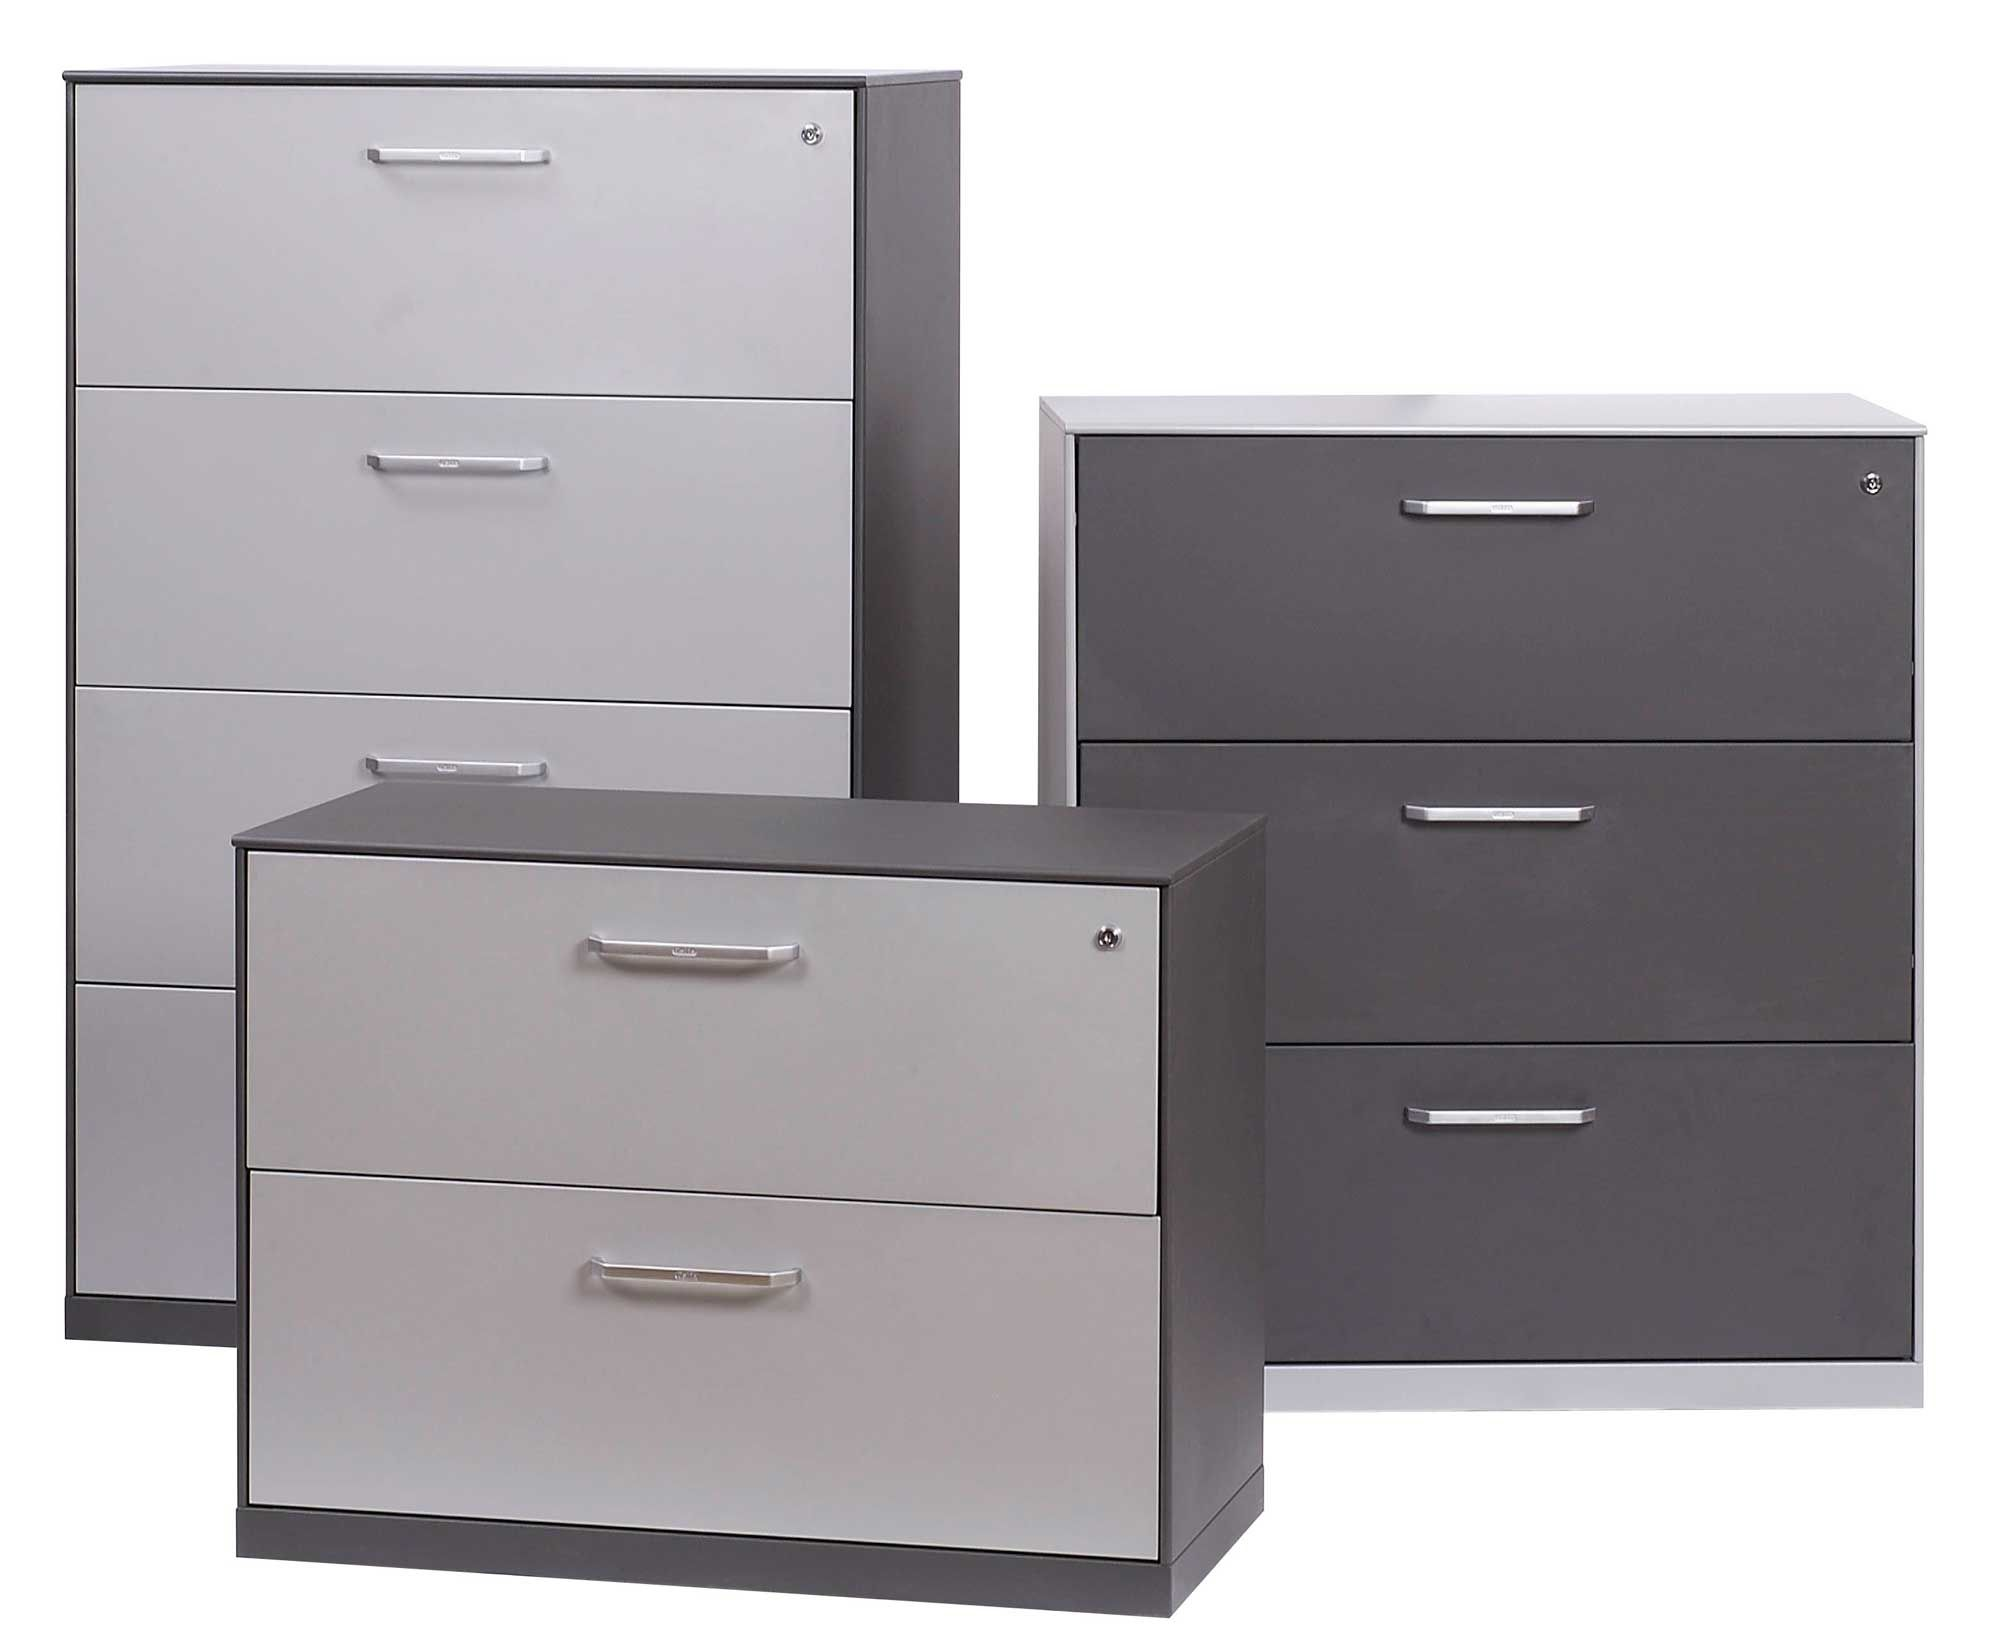 fice Filing Cabinets advice tips